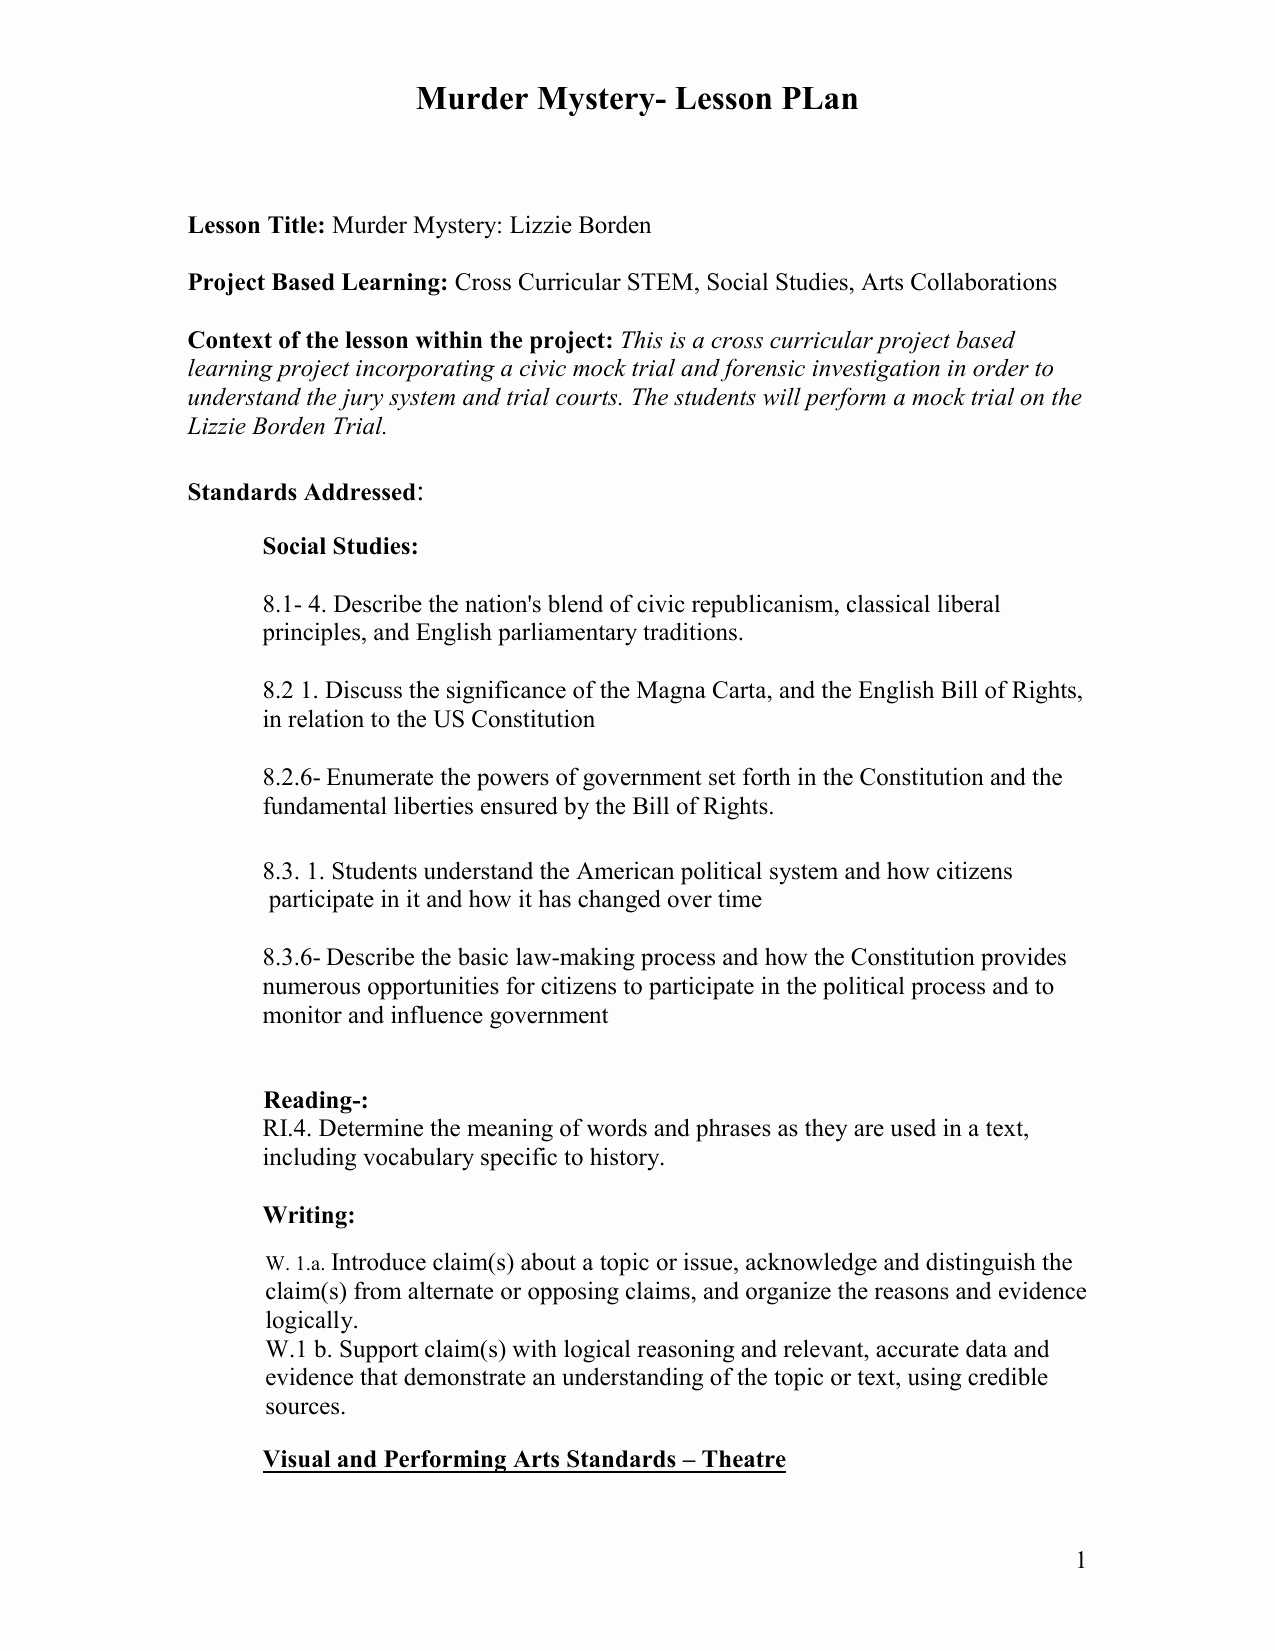 Magna Carta Worksheet as Well as Primary source Worksheet Gallery Worksheet Math for Kids